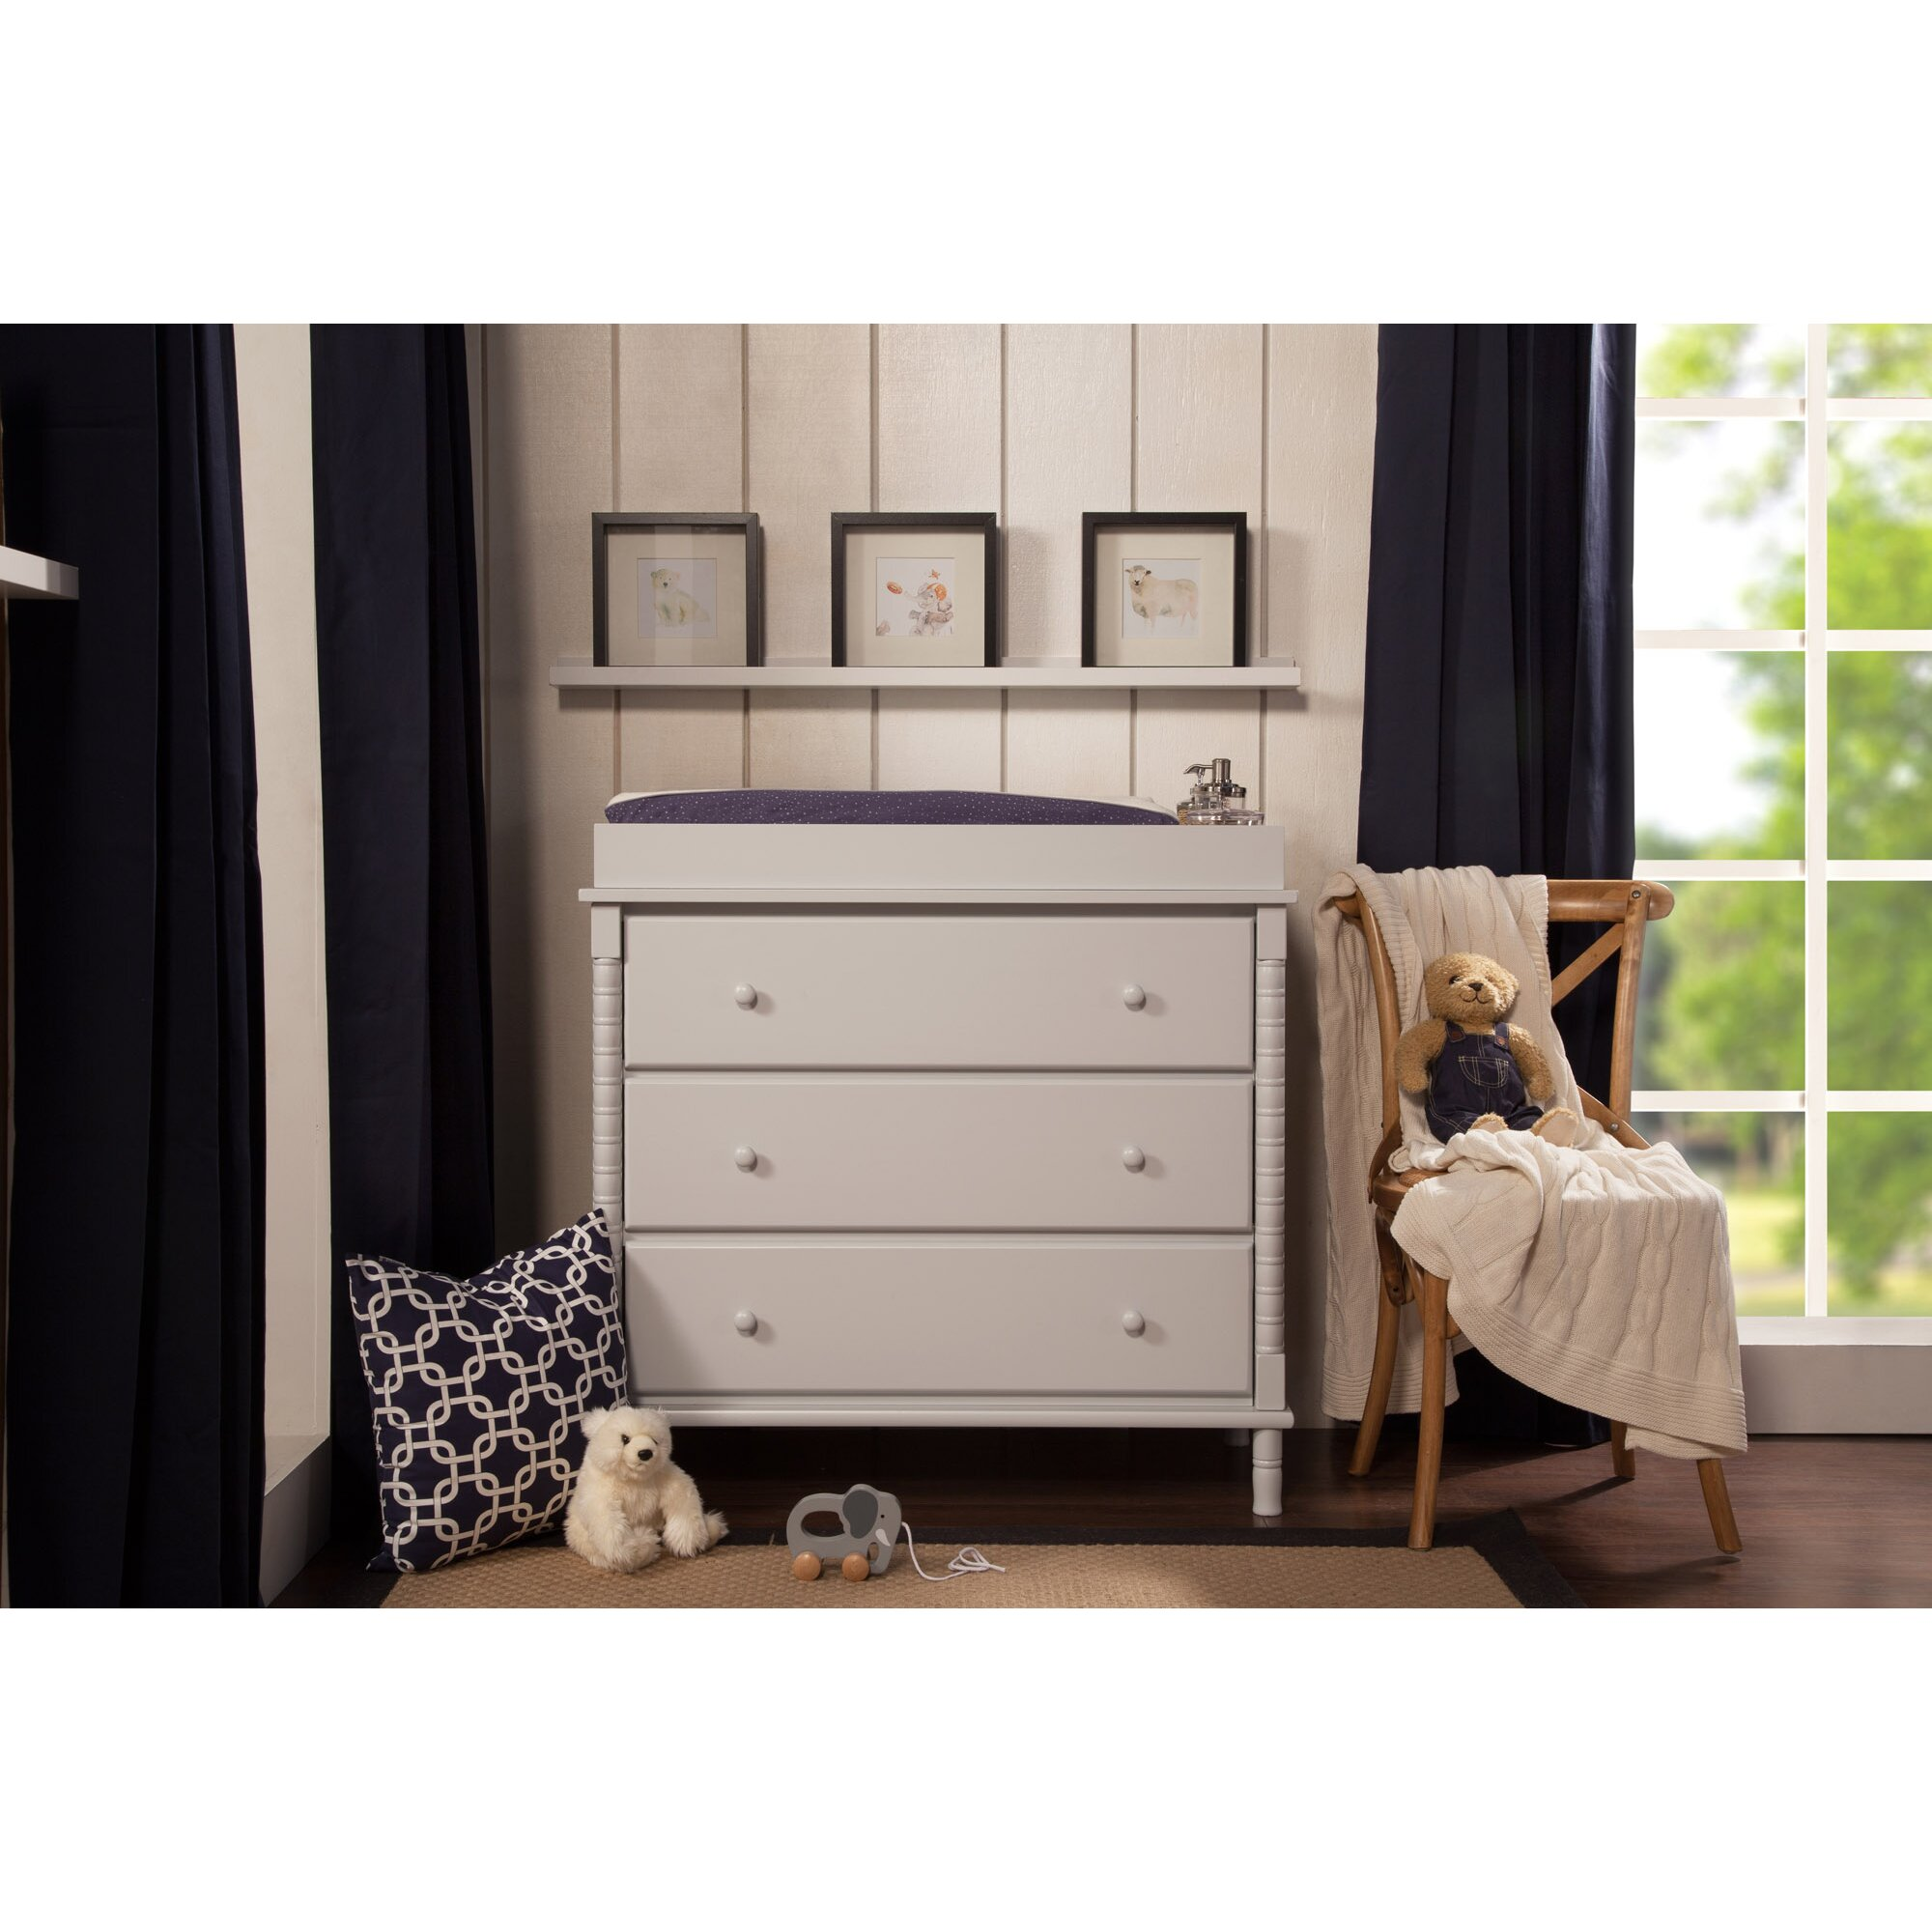 oak evenflo for ideas convertible furnitures crib lind nursery white nightstand furniture stunning davinci comfy in cribs jenny